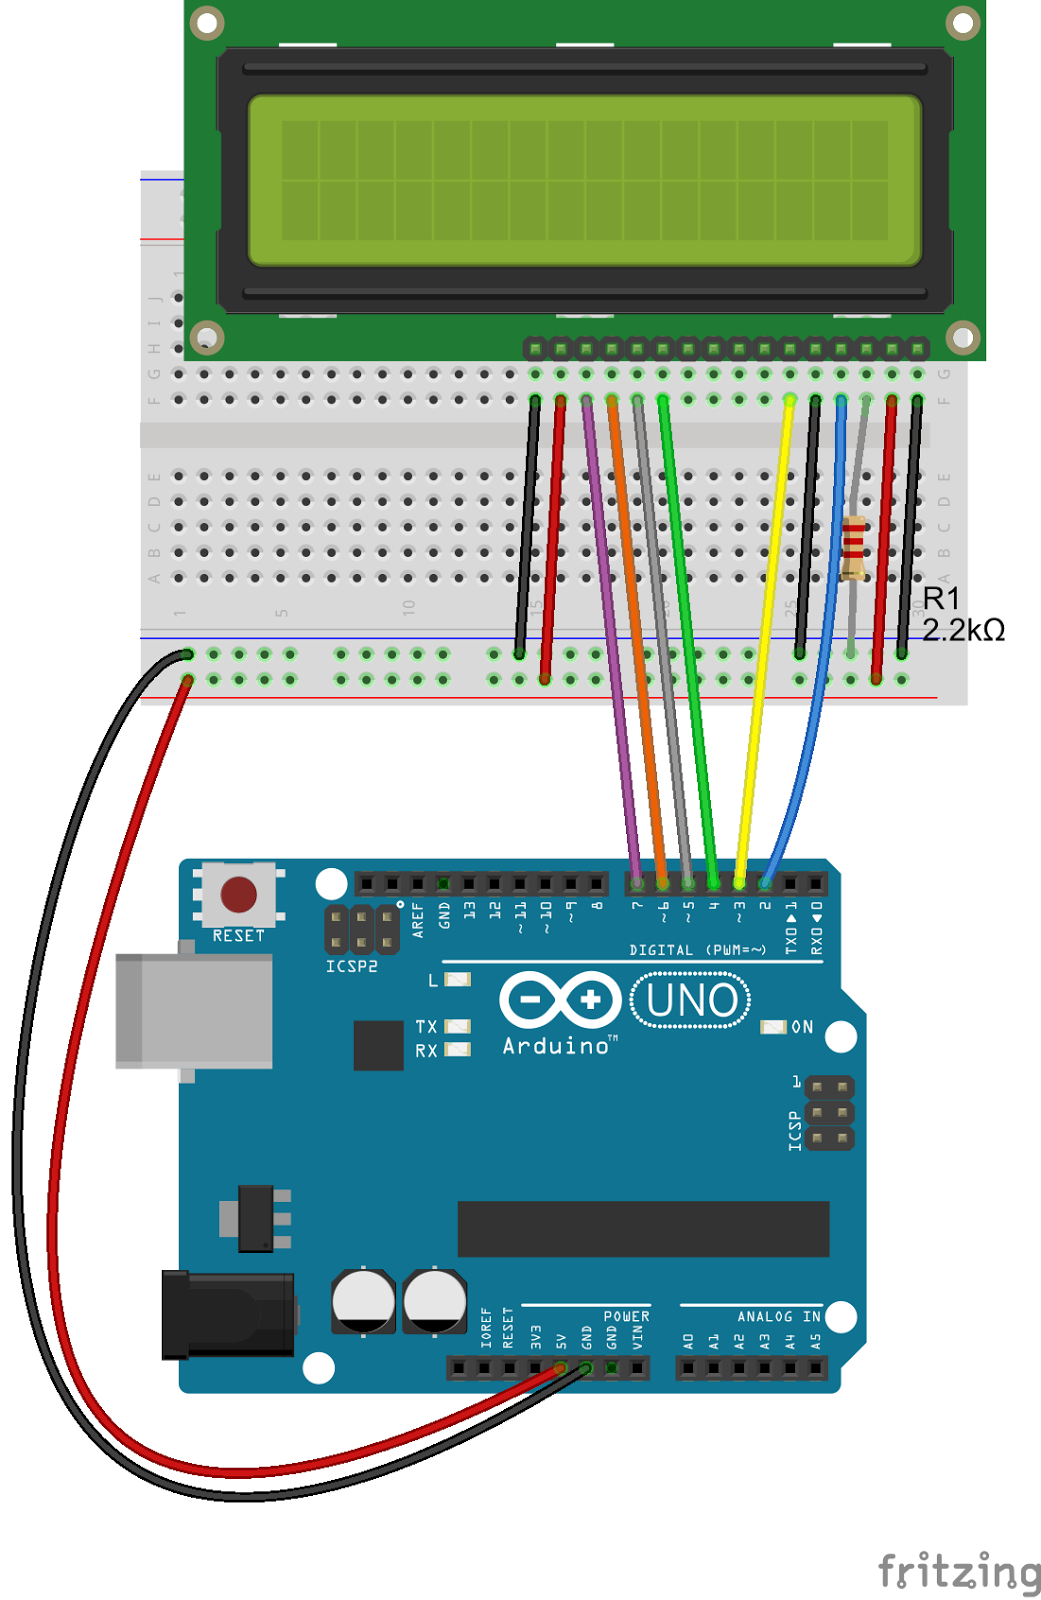 Silicondevelop wordpress together with Arduino Temperature Sensor likewise Character Lcd Displays Part 1 besides LiquidCrystalDisplay as well Controlling Lcd Displays With The Hitachi Hd44780 Driver. on hitachi lcd 16 pin